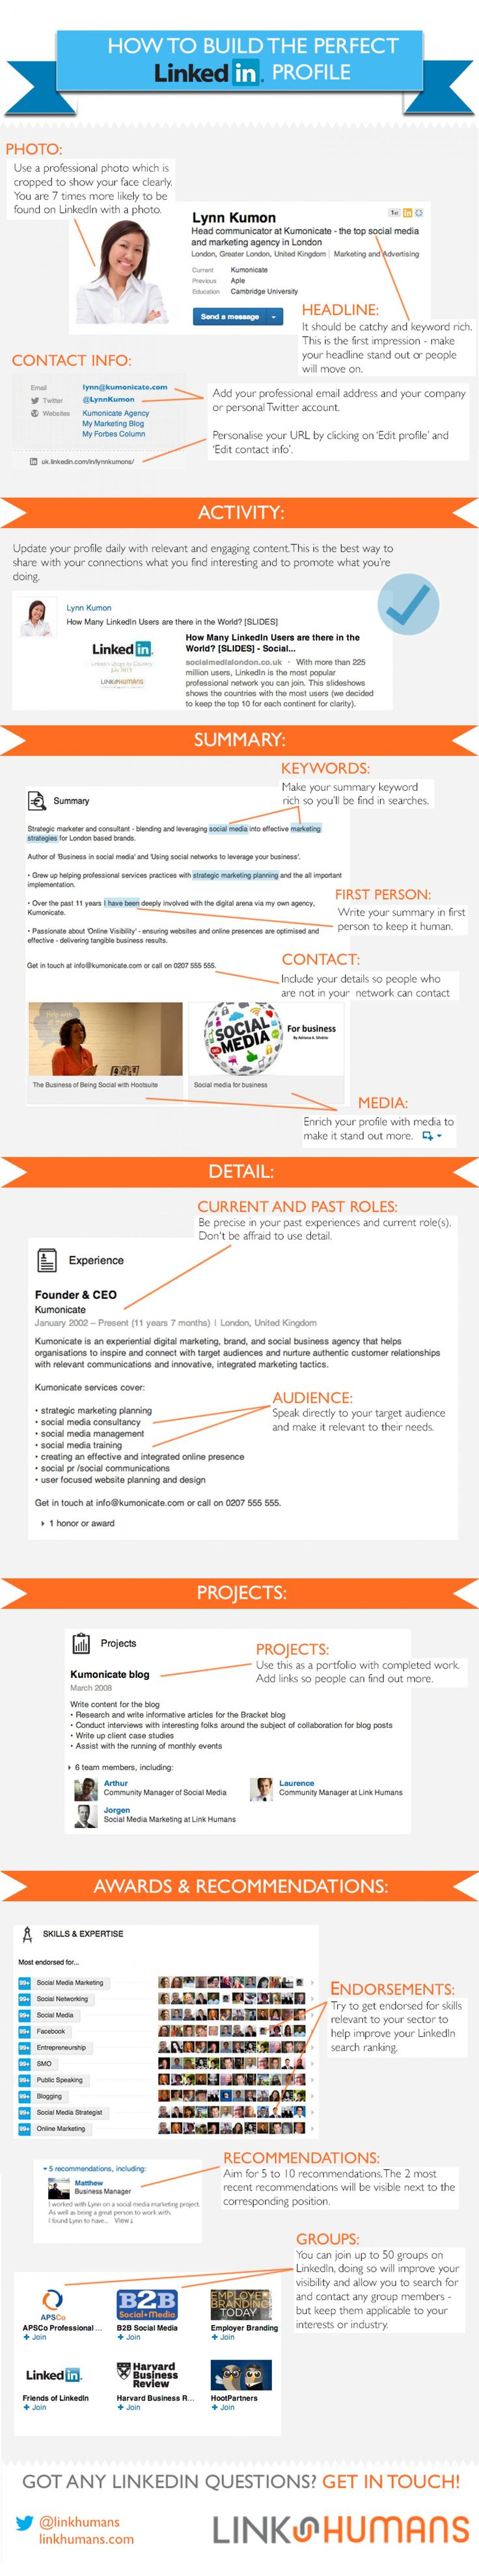 How To Build the Perfect Linked.in Profile Infographic